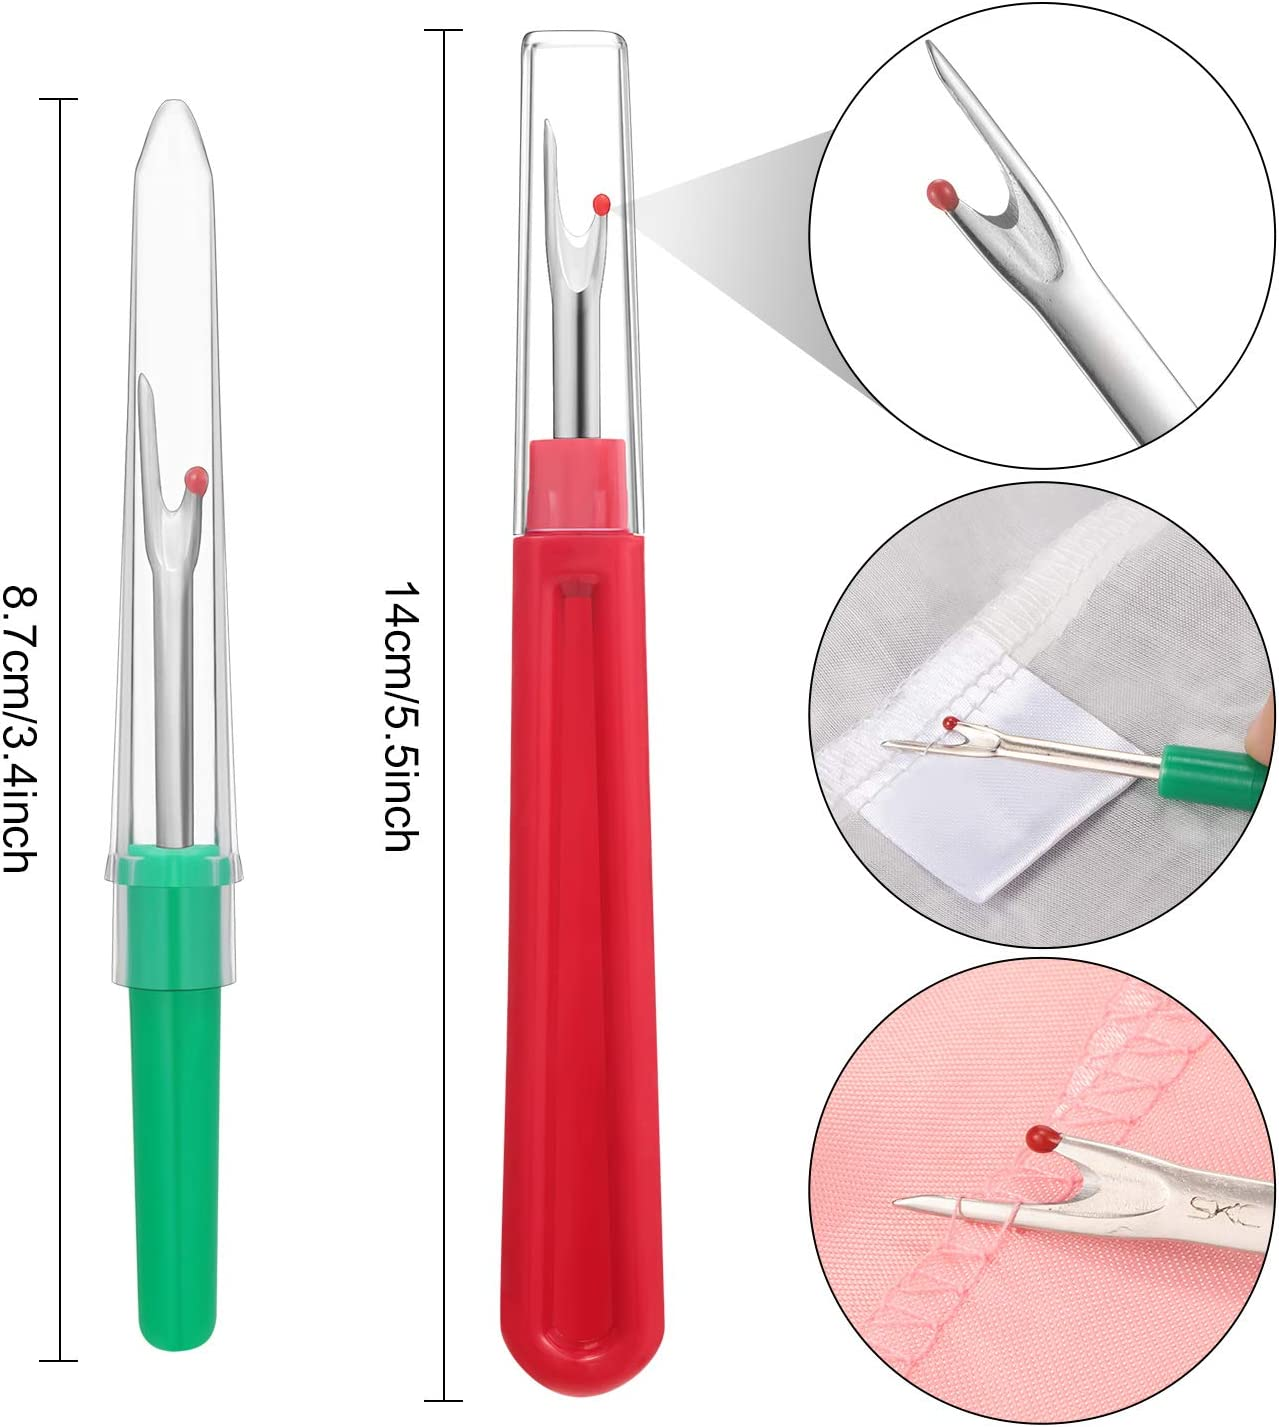 Needle Threader Sewing Set 6 Pieces Automatic Threaders 2 Pieces Seam Rippers 3 Pieces Sewing Thimble and 30 Pieces Assorted Needles for Daily Sewing Problem 10 Pieces Hand Sewing Needle Threader